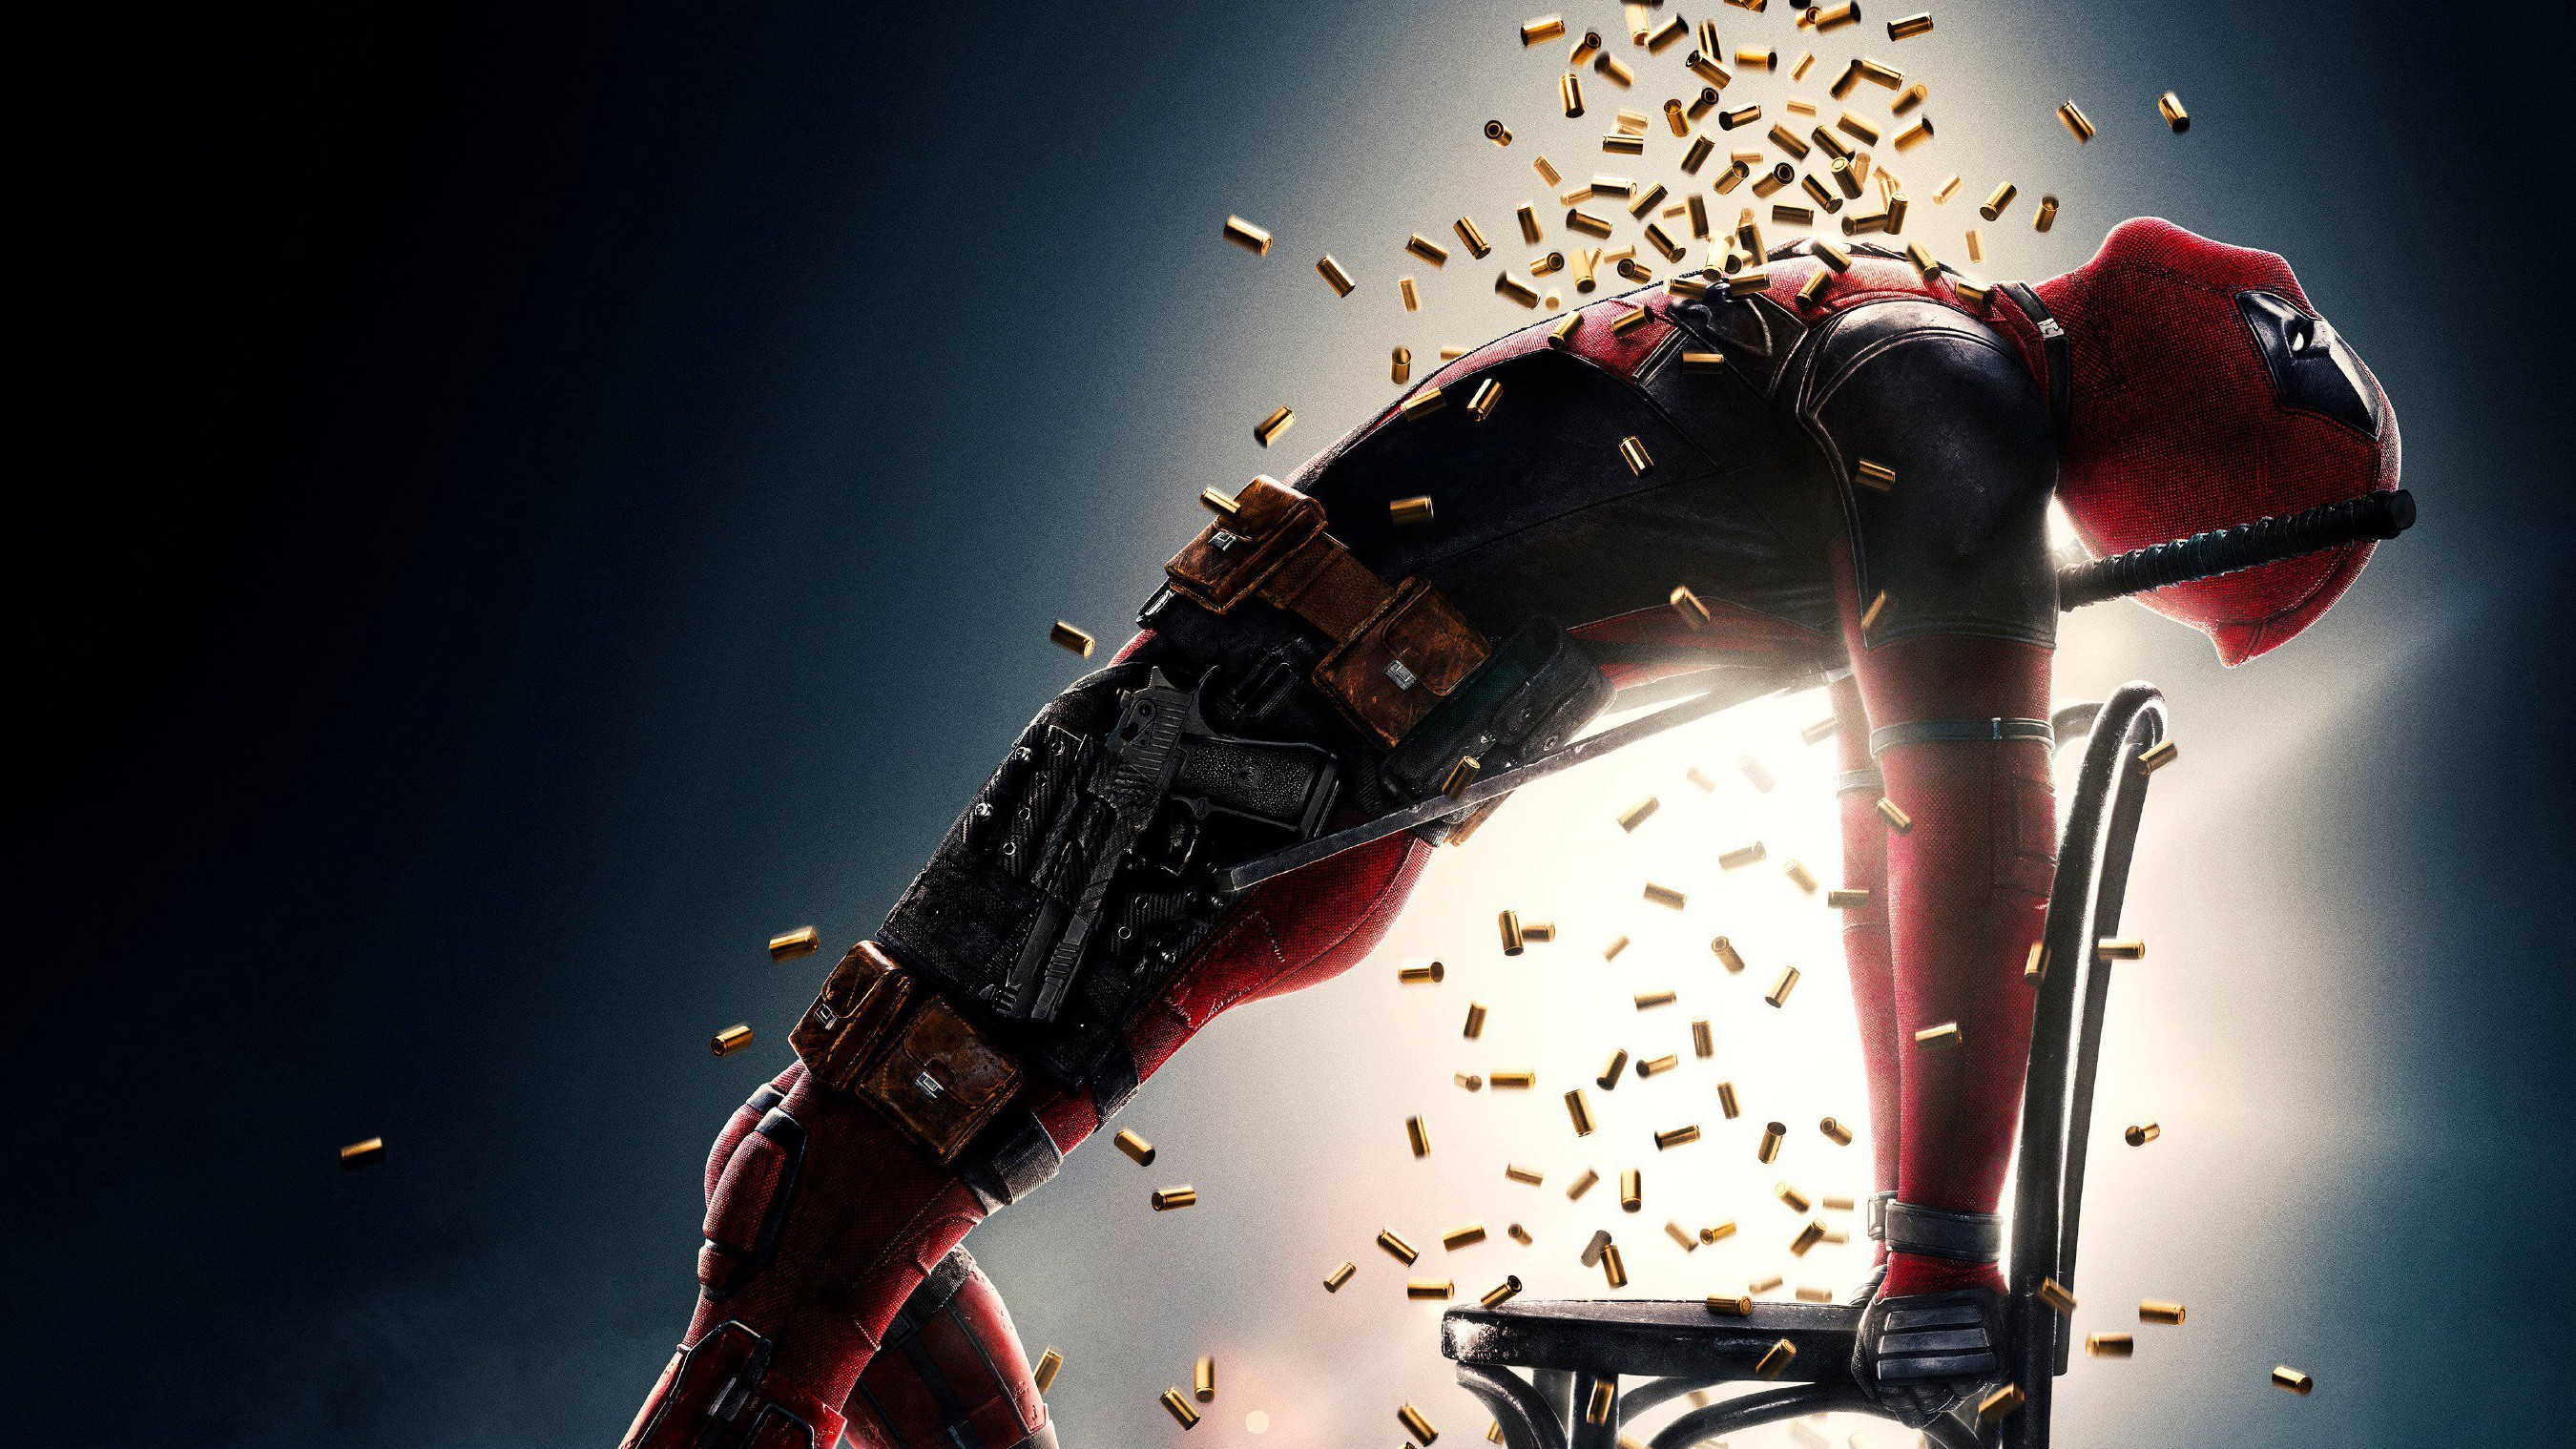 Ryan Reynolds Explains Why Deadpool Saved Spoiler Character